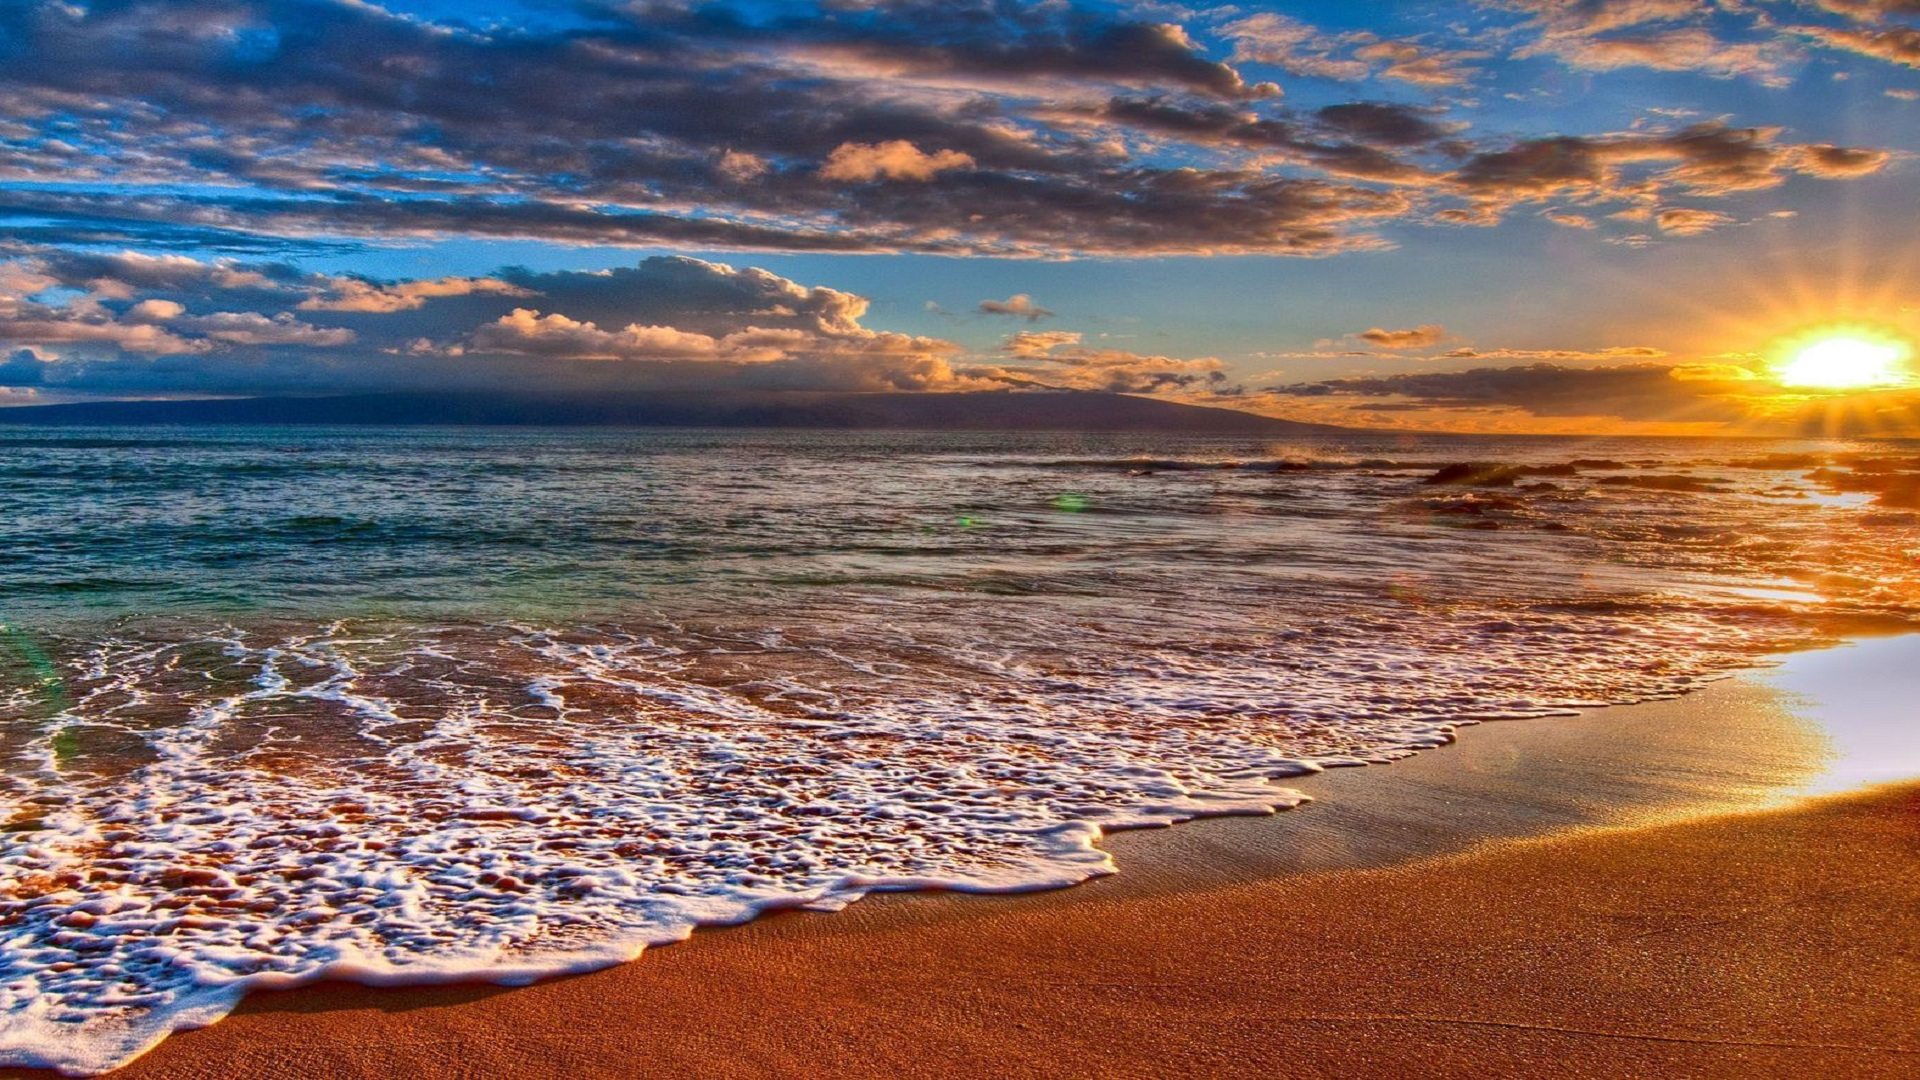 ocean-shore-wallpaper-3